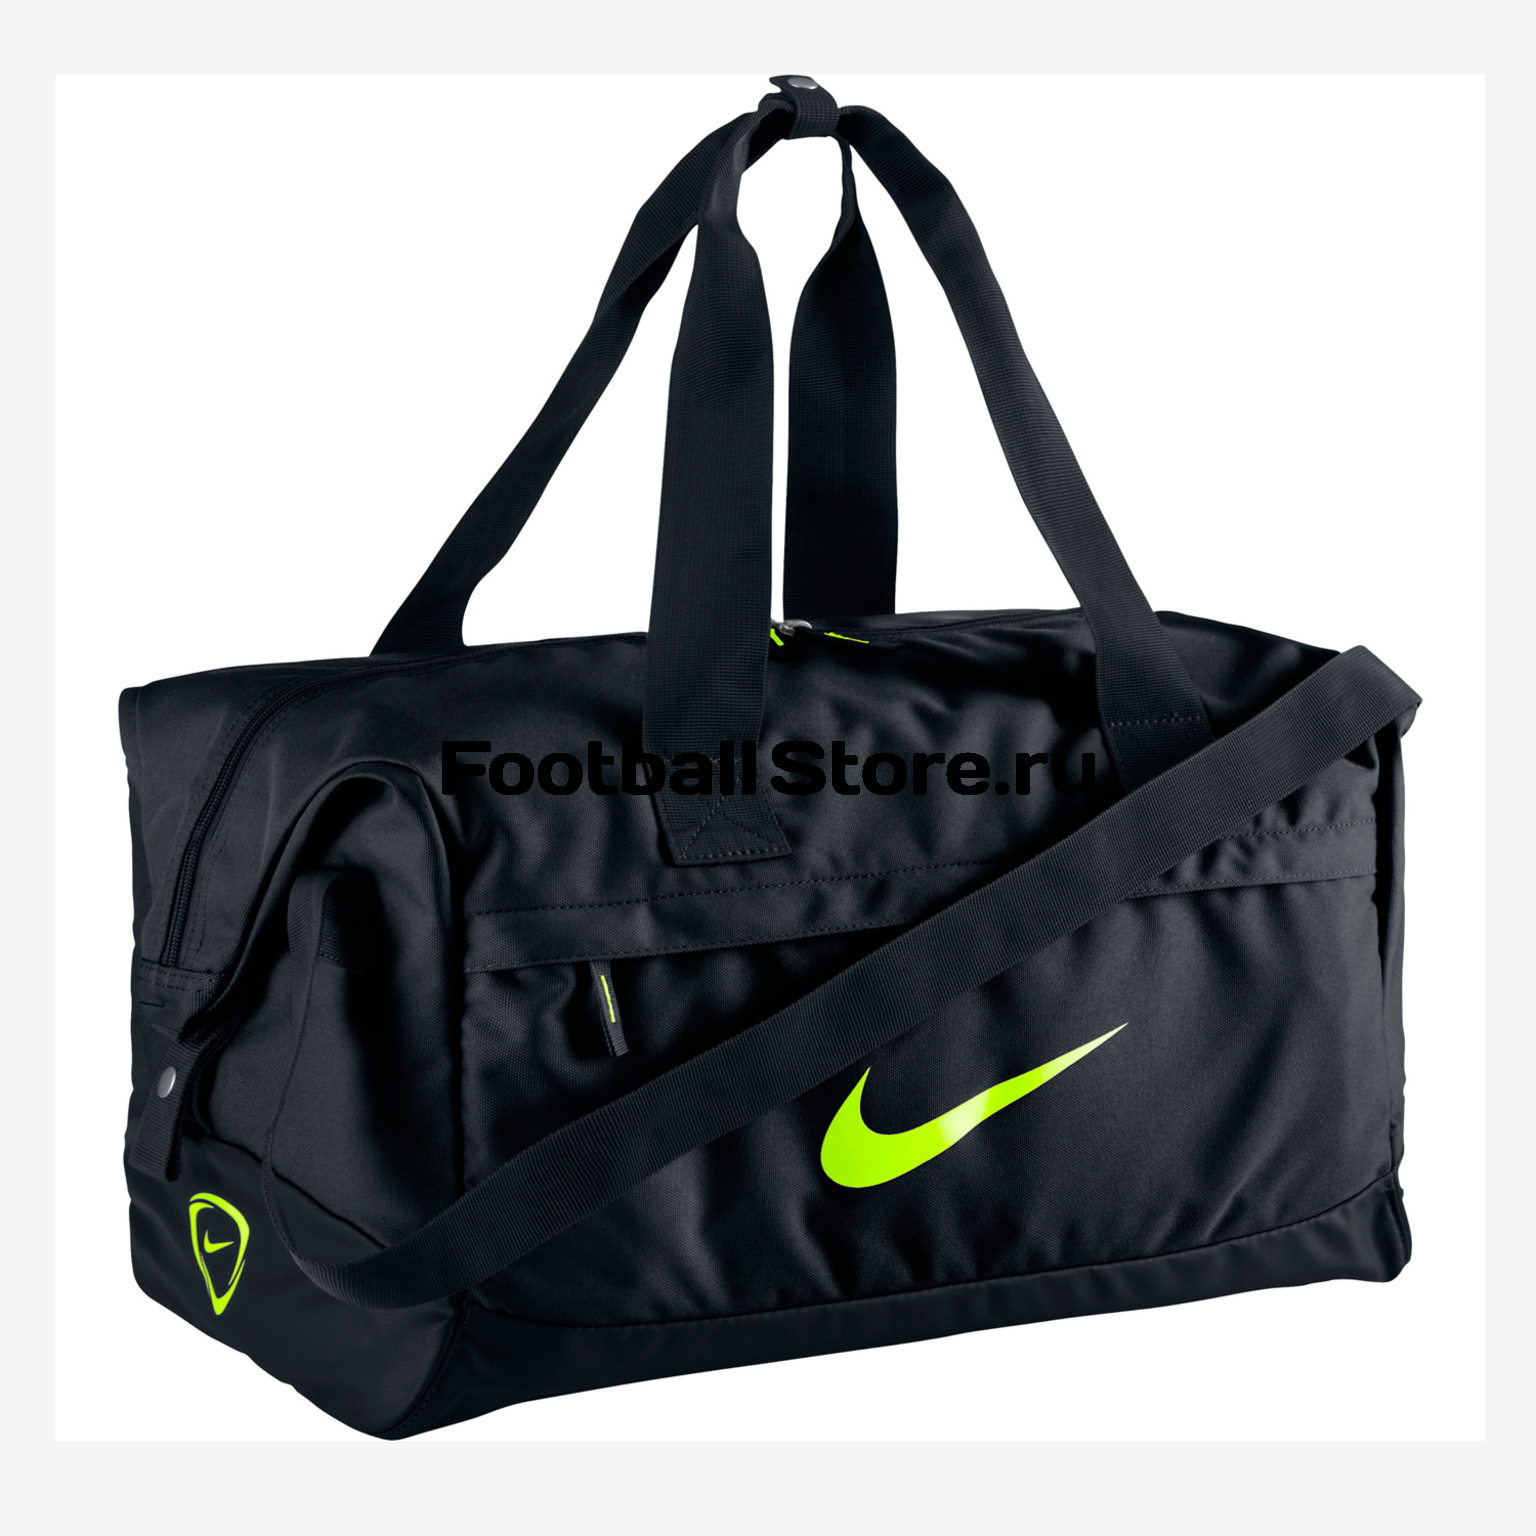 Сумки/Рюкзаки Nike Сумка Nike Football Shield Compact Duffel BA4690-071